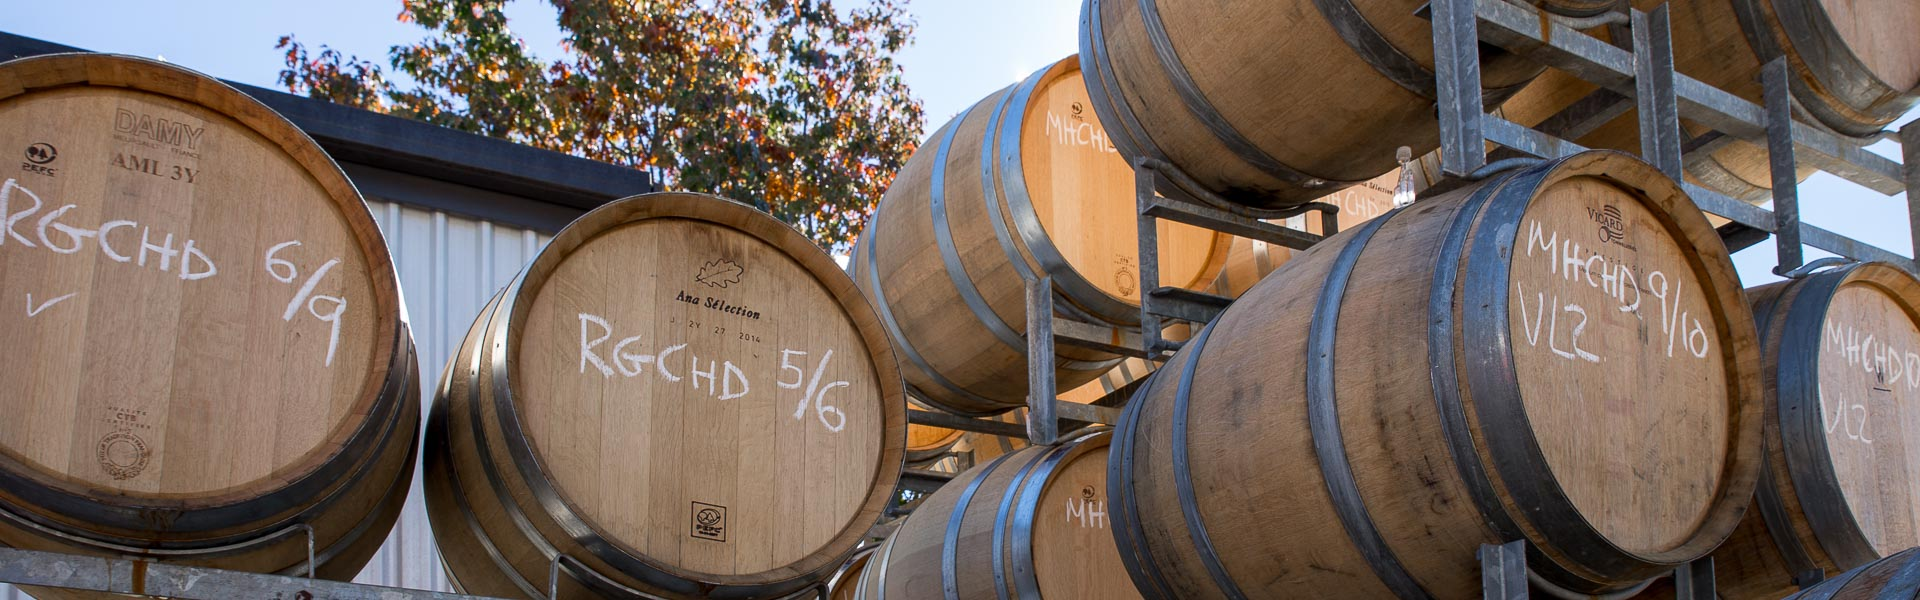 Barrels at Neudorf Vineyards, Nelson